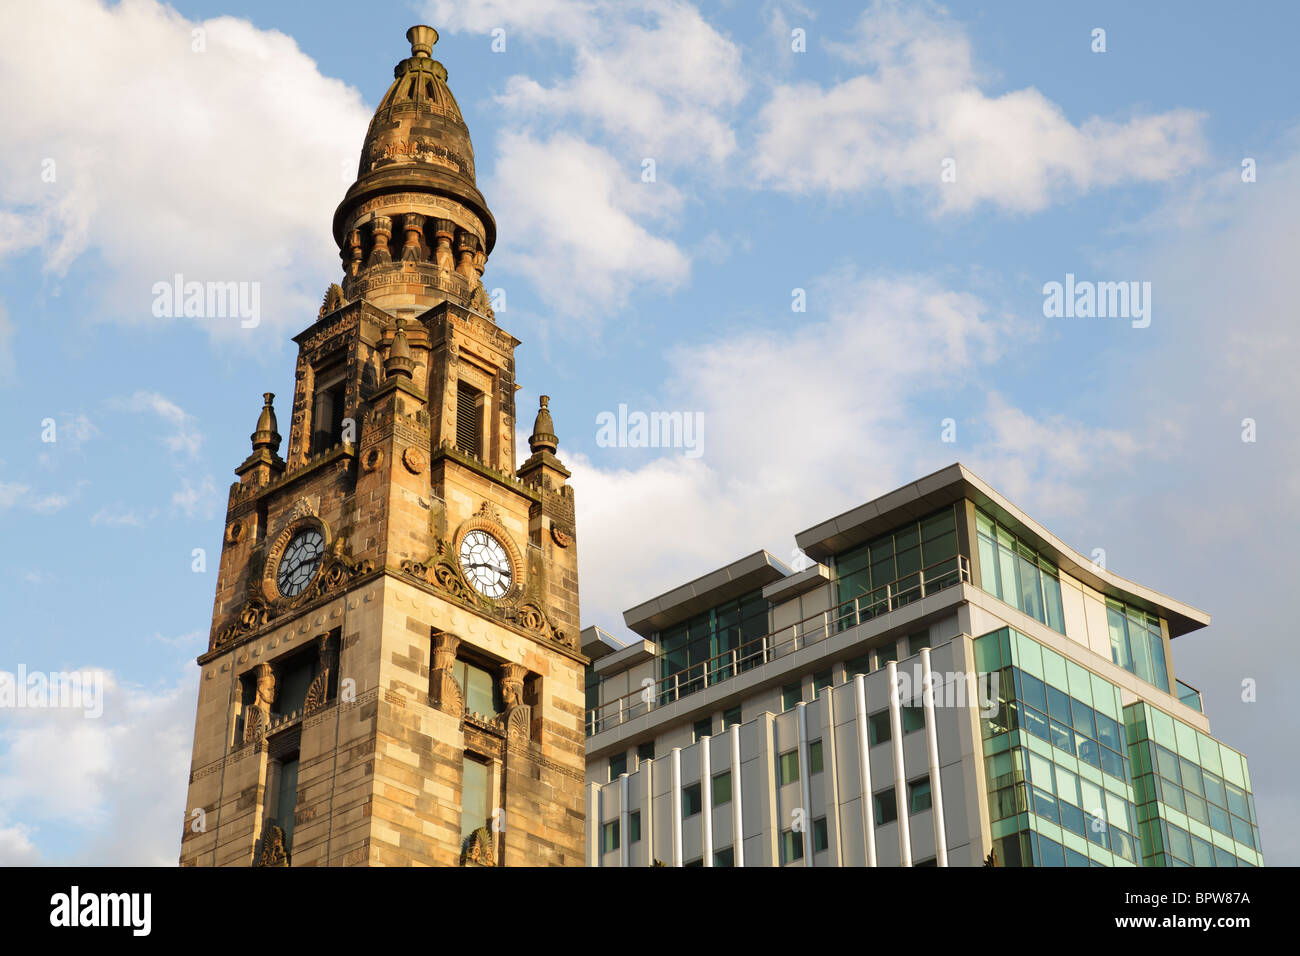 The Tower of the Victorian St Vincent Street Church designed by Alexander Greek Thomson beside the Pinnacle Building - Stock Image